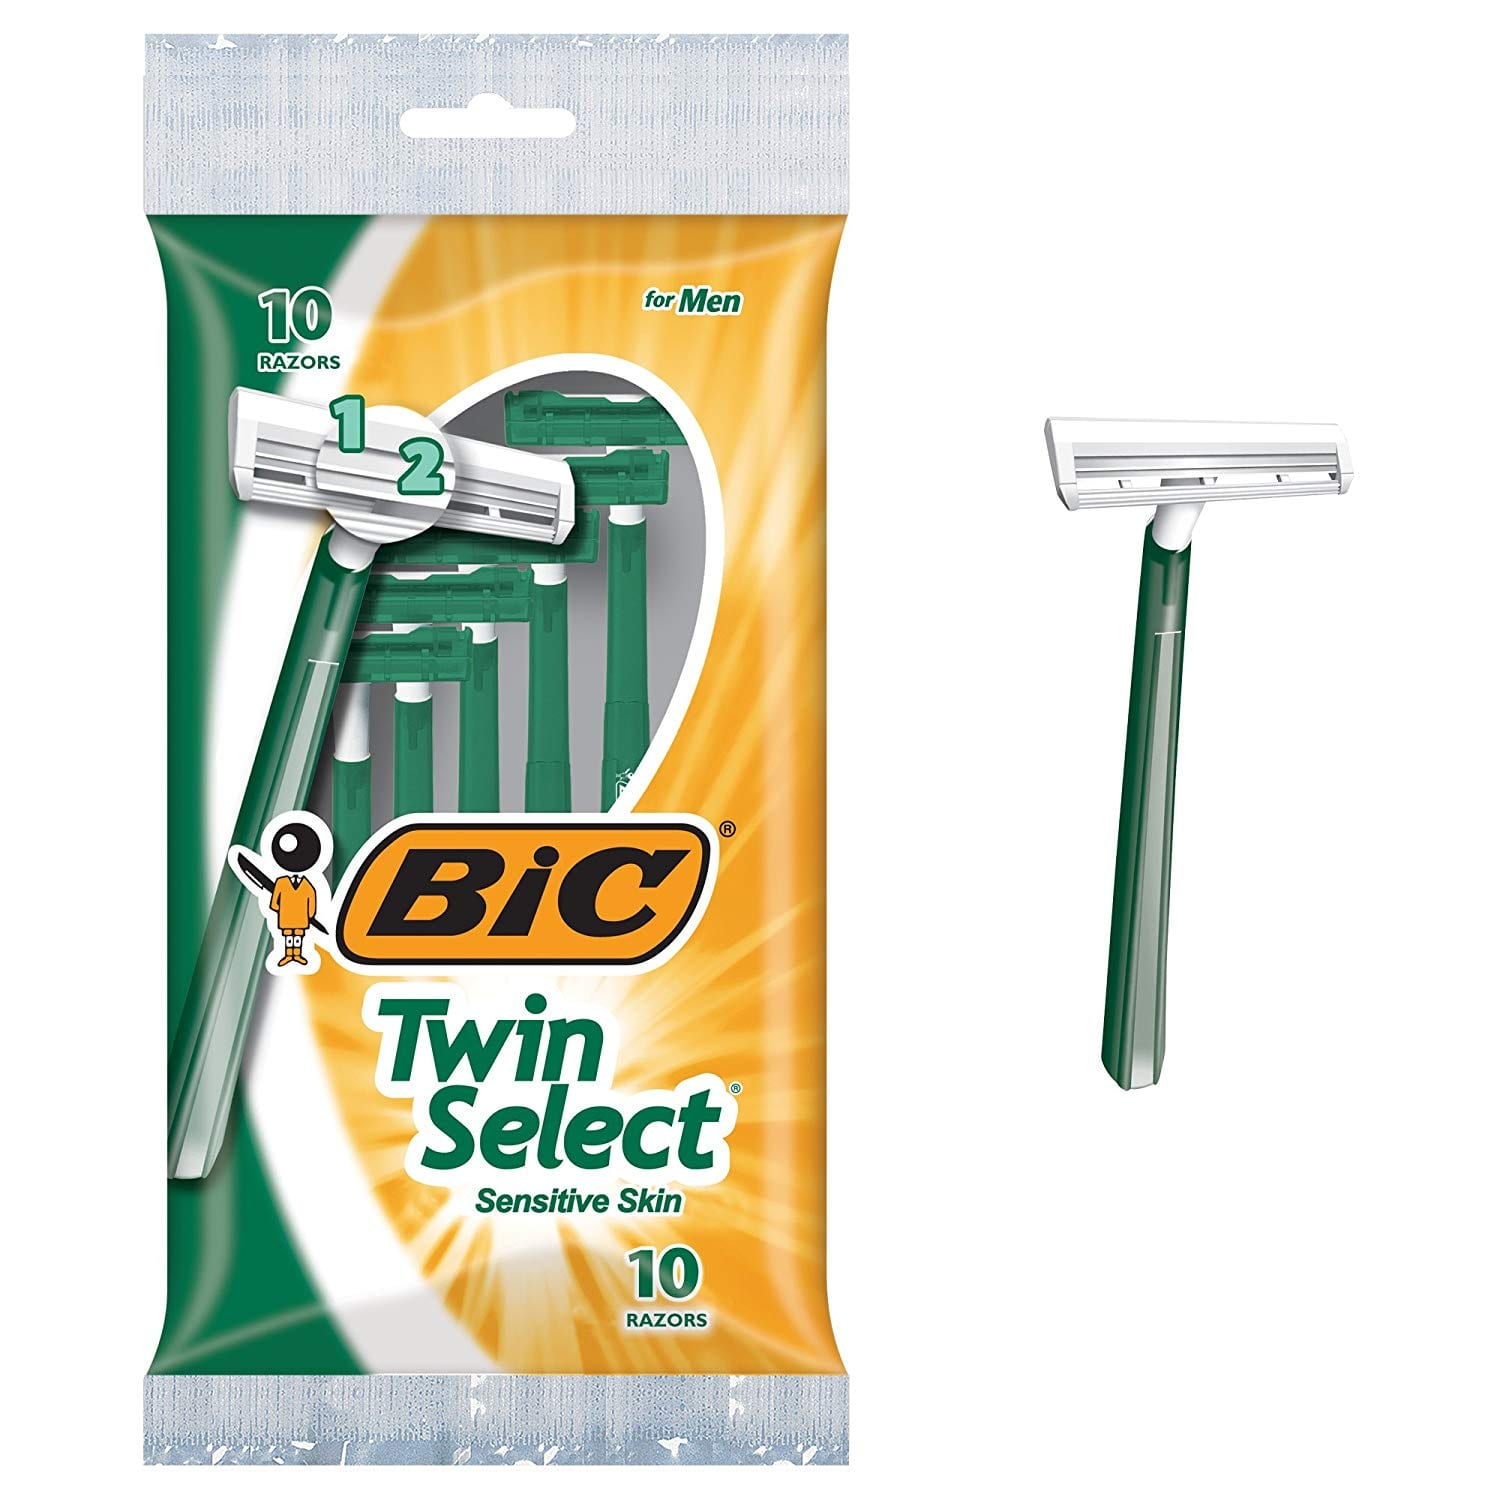 BIC Twin Select Men's Disposable Razor, 30 count $5.87